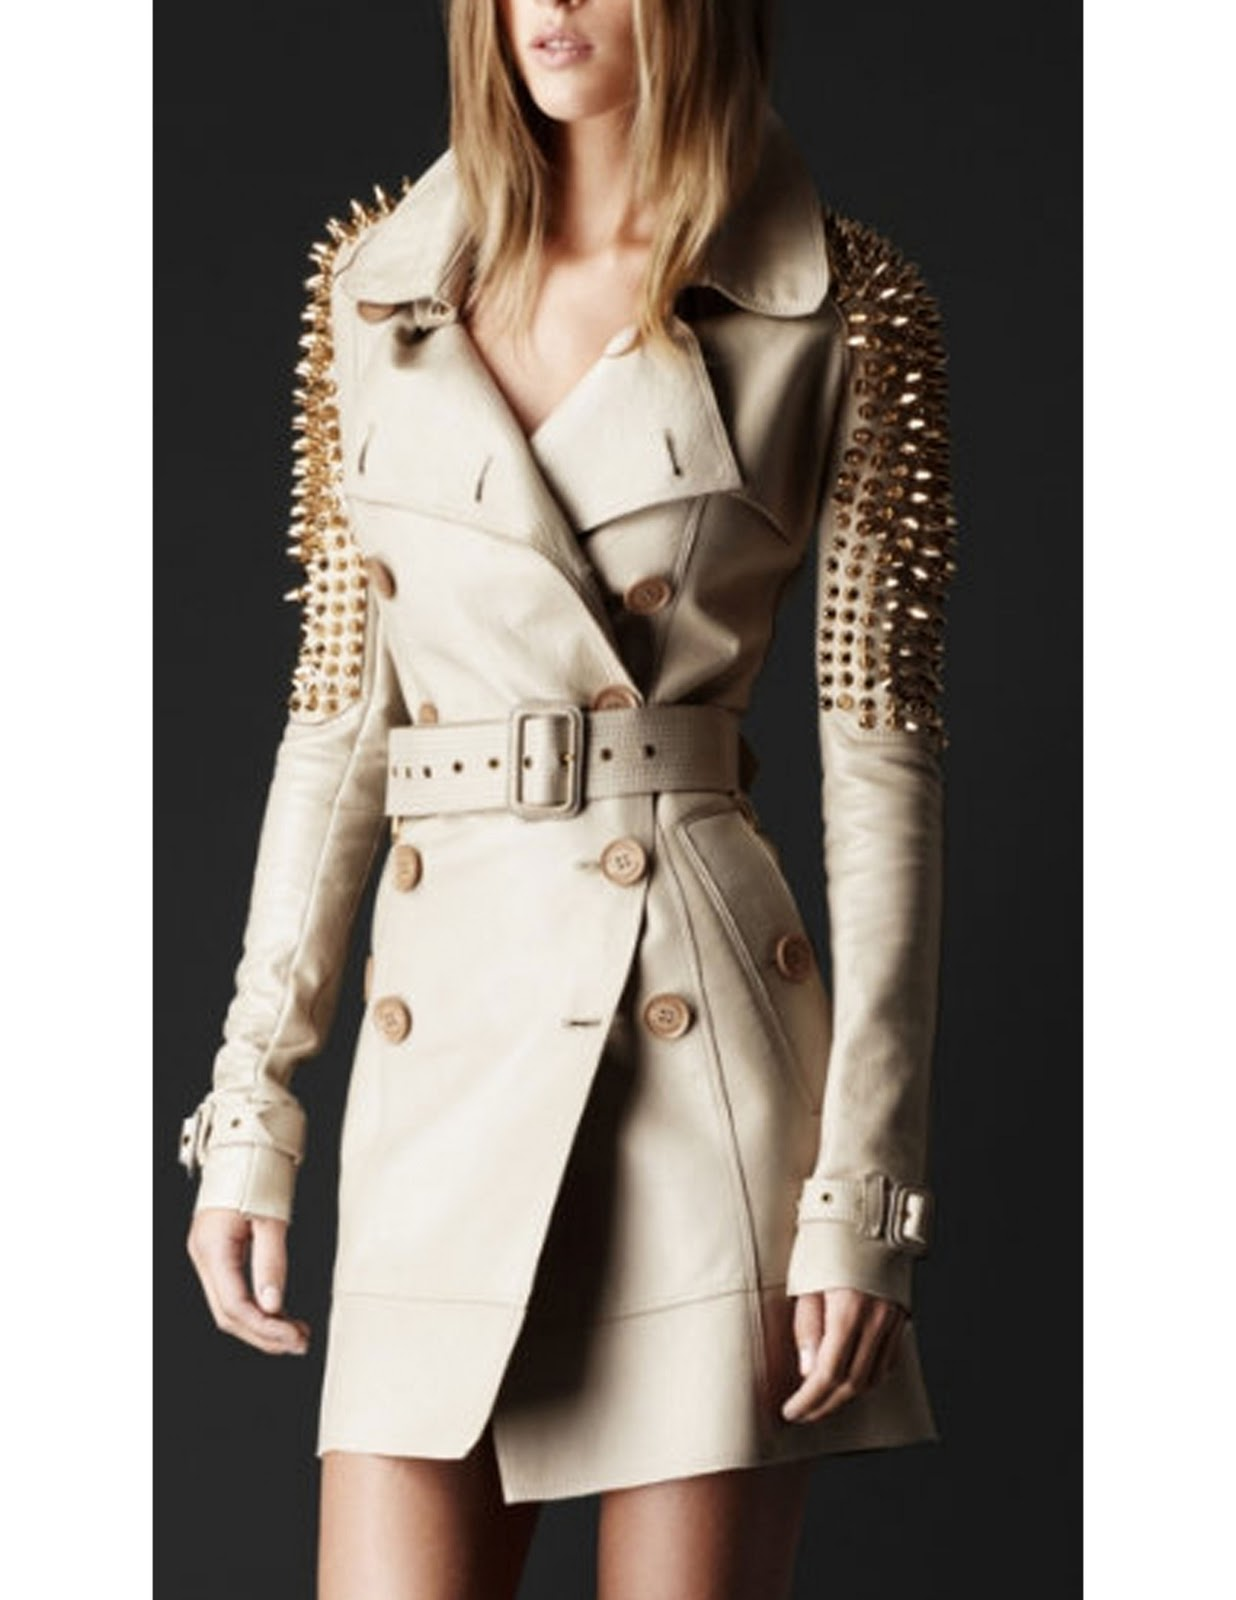 burberry prorsum quilted leather jacket 2011 jacket gabardine cropped biker jacket with contrast leather sleeves